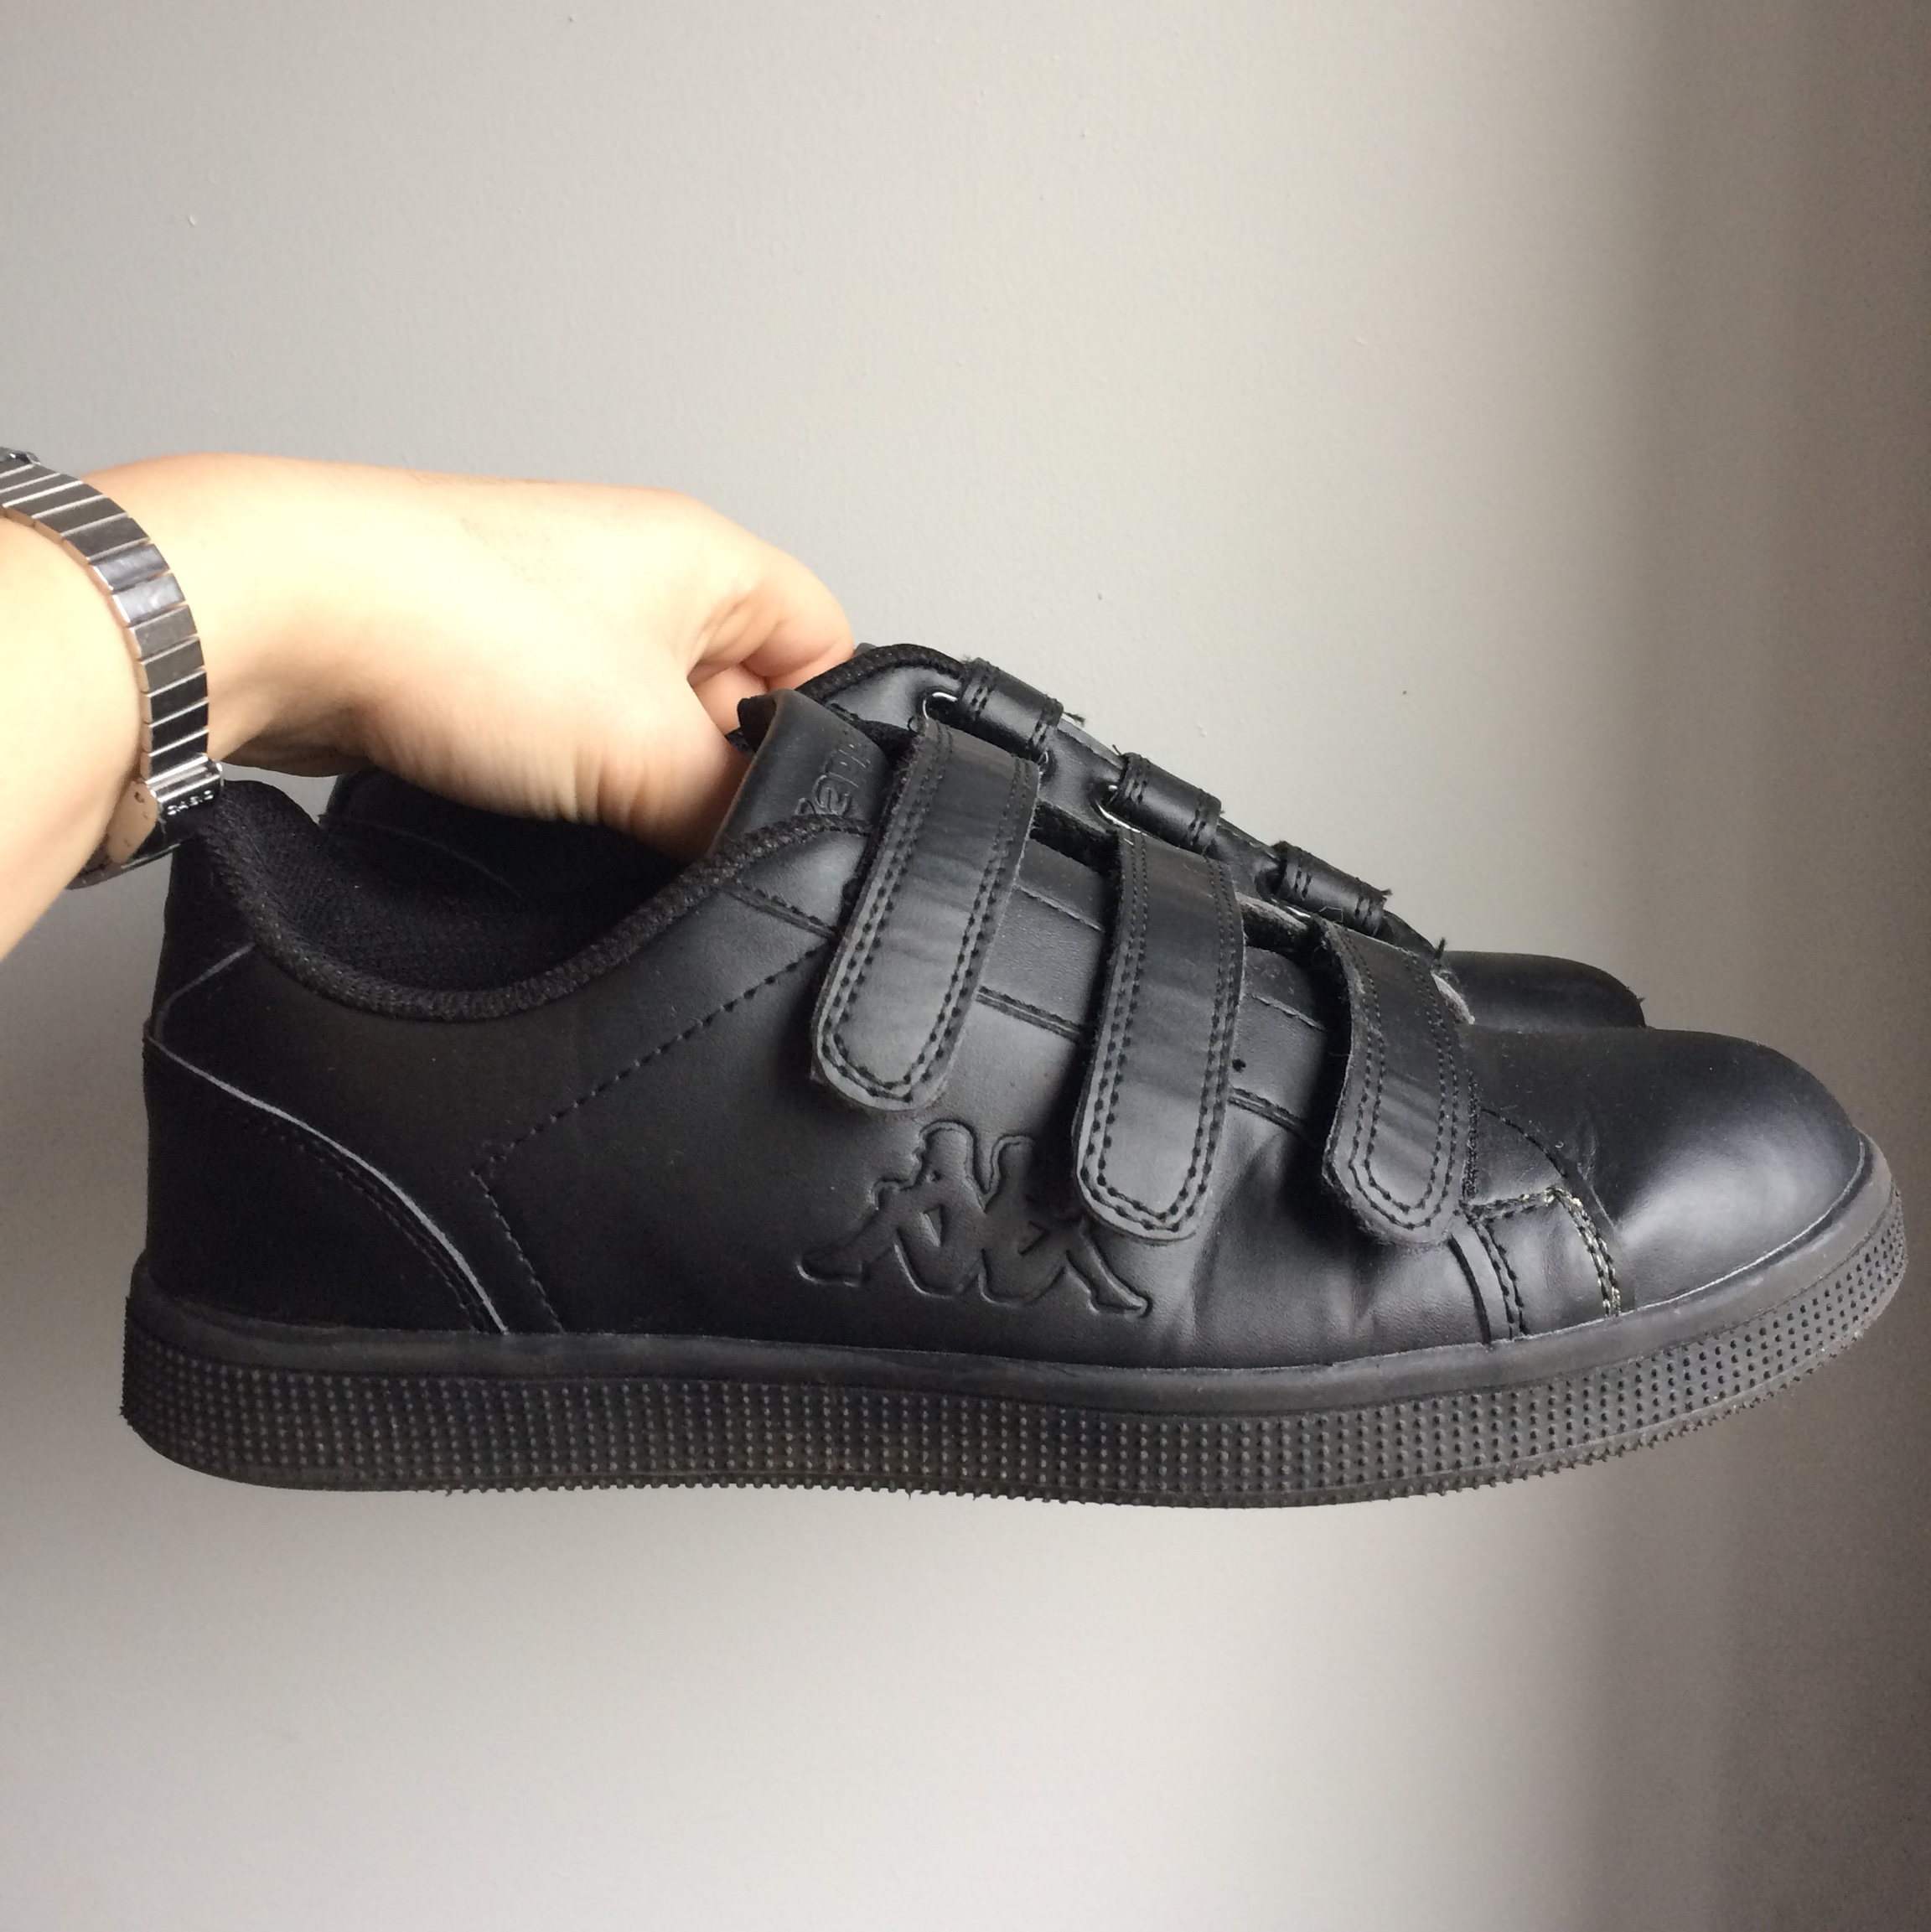 Real cool Black Kappa trainers with